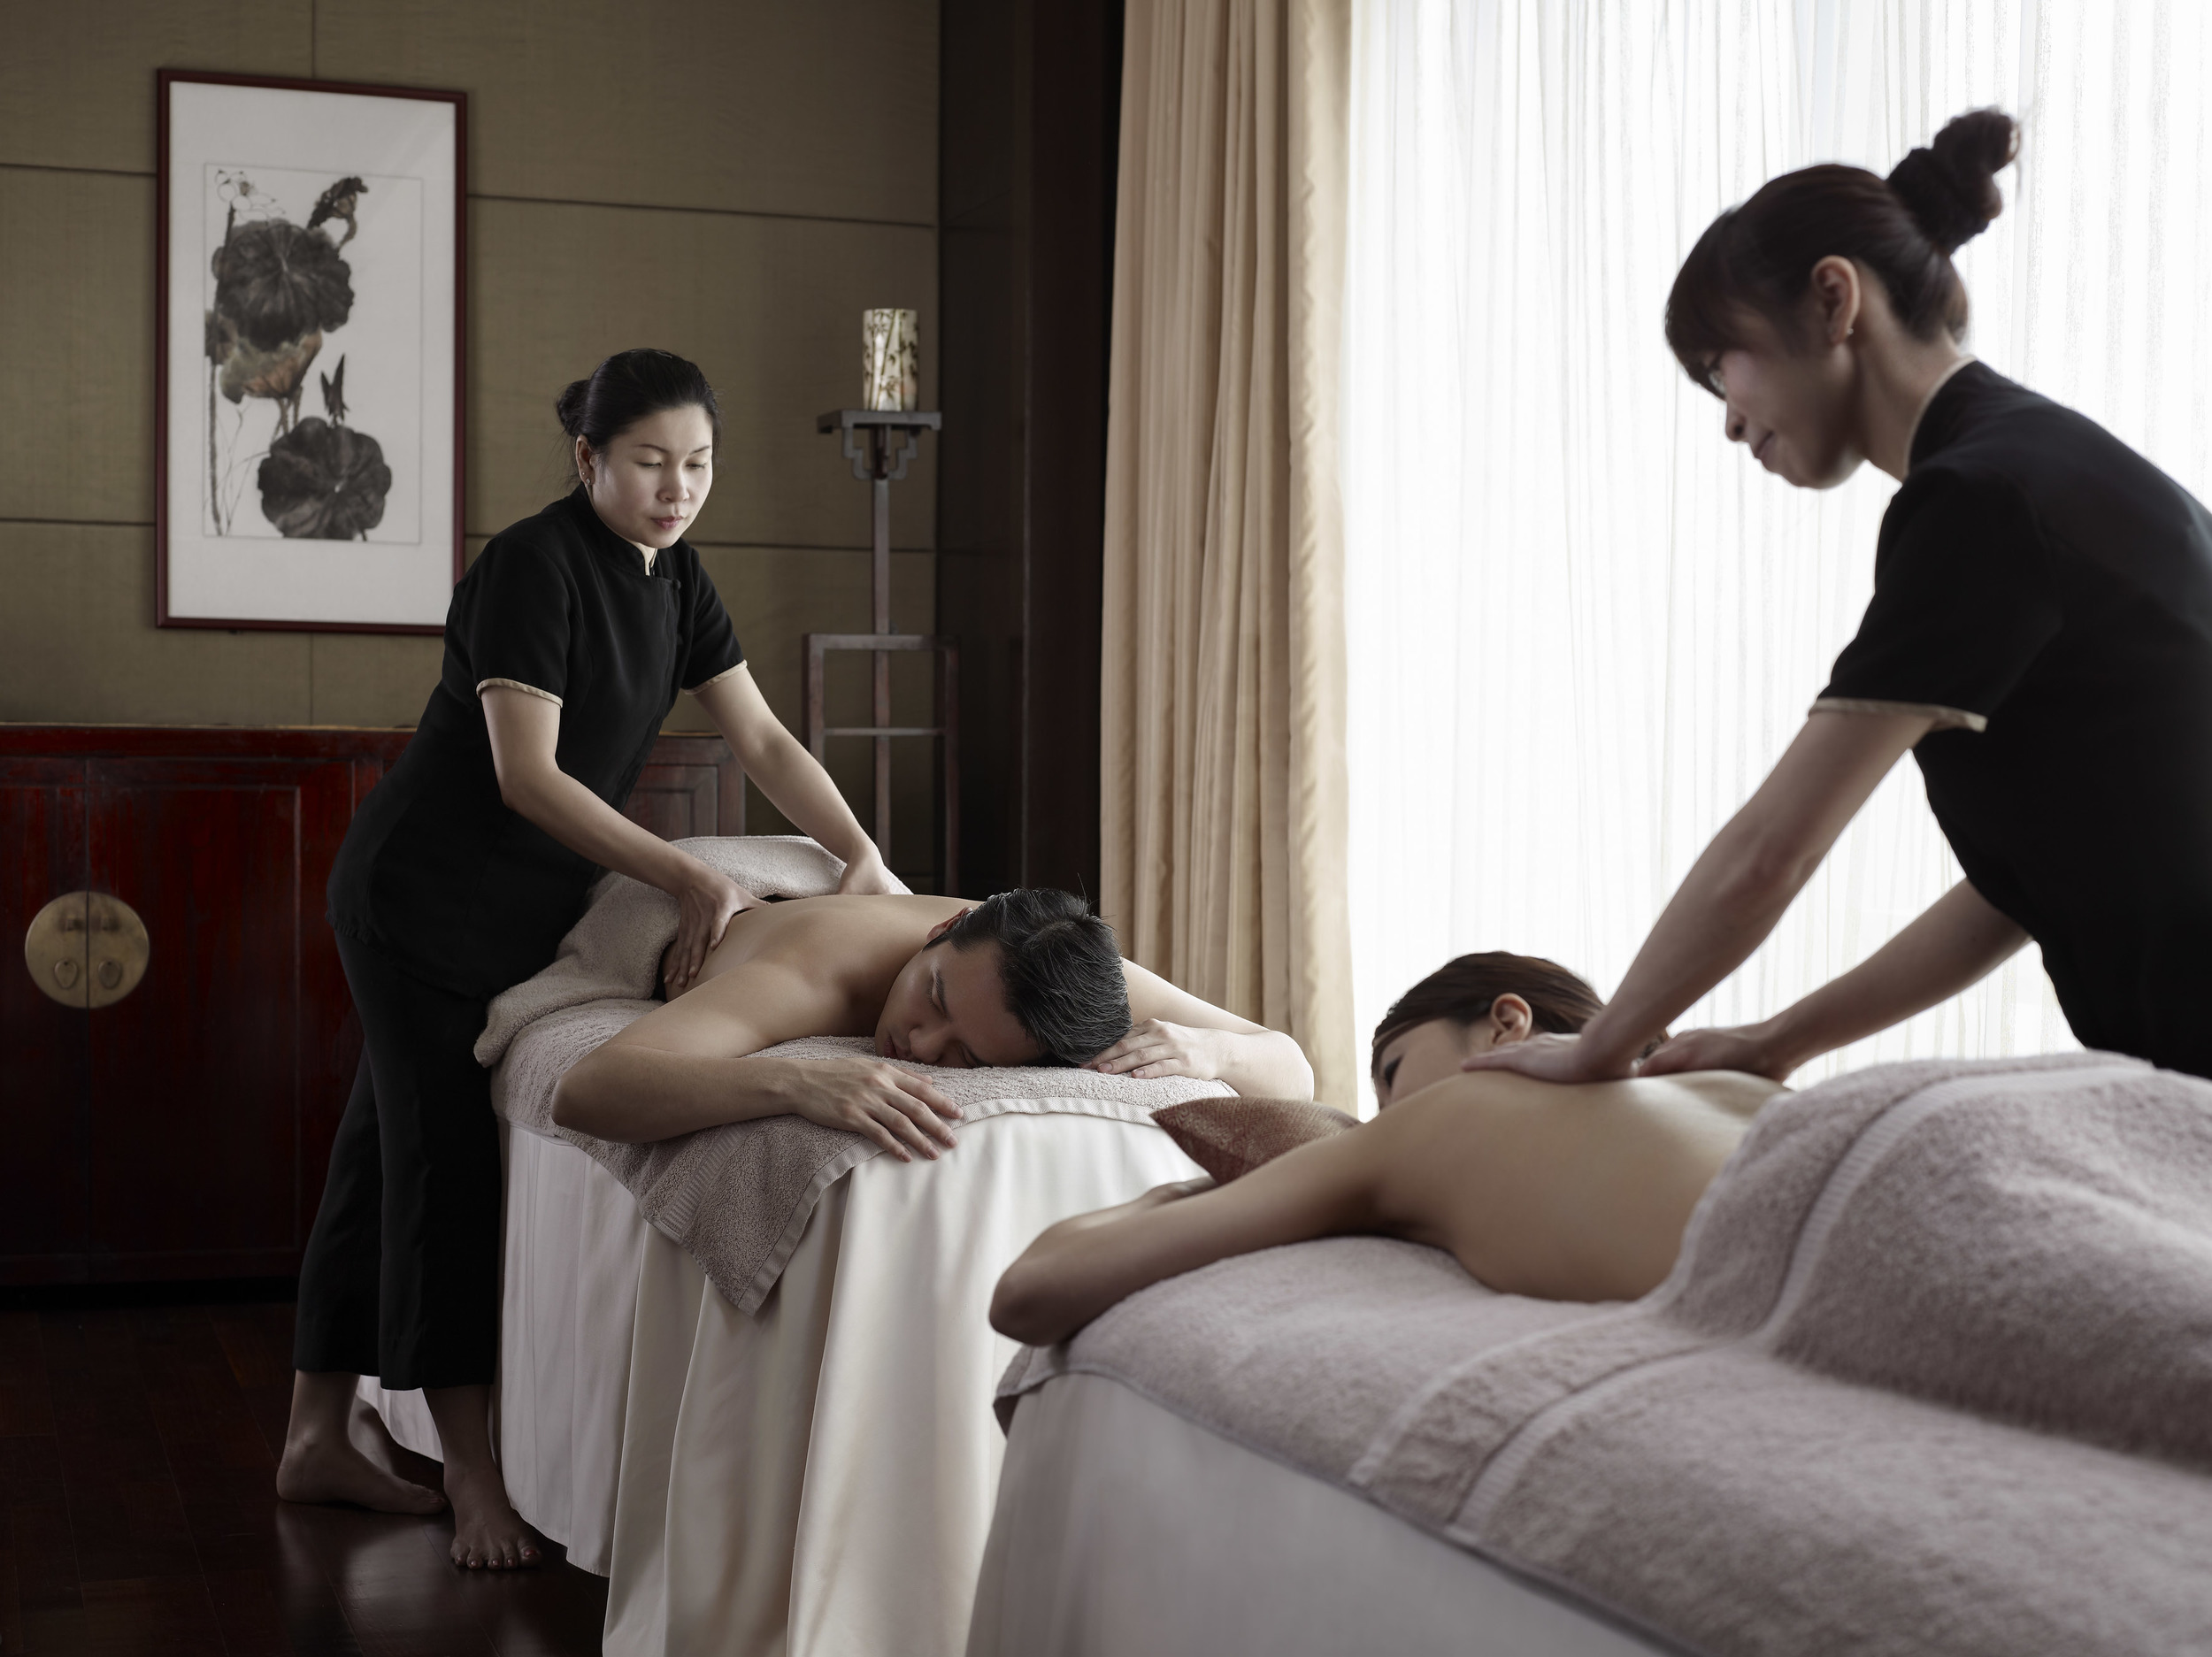 chuan_spa_spirit_couple_en.jpg